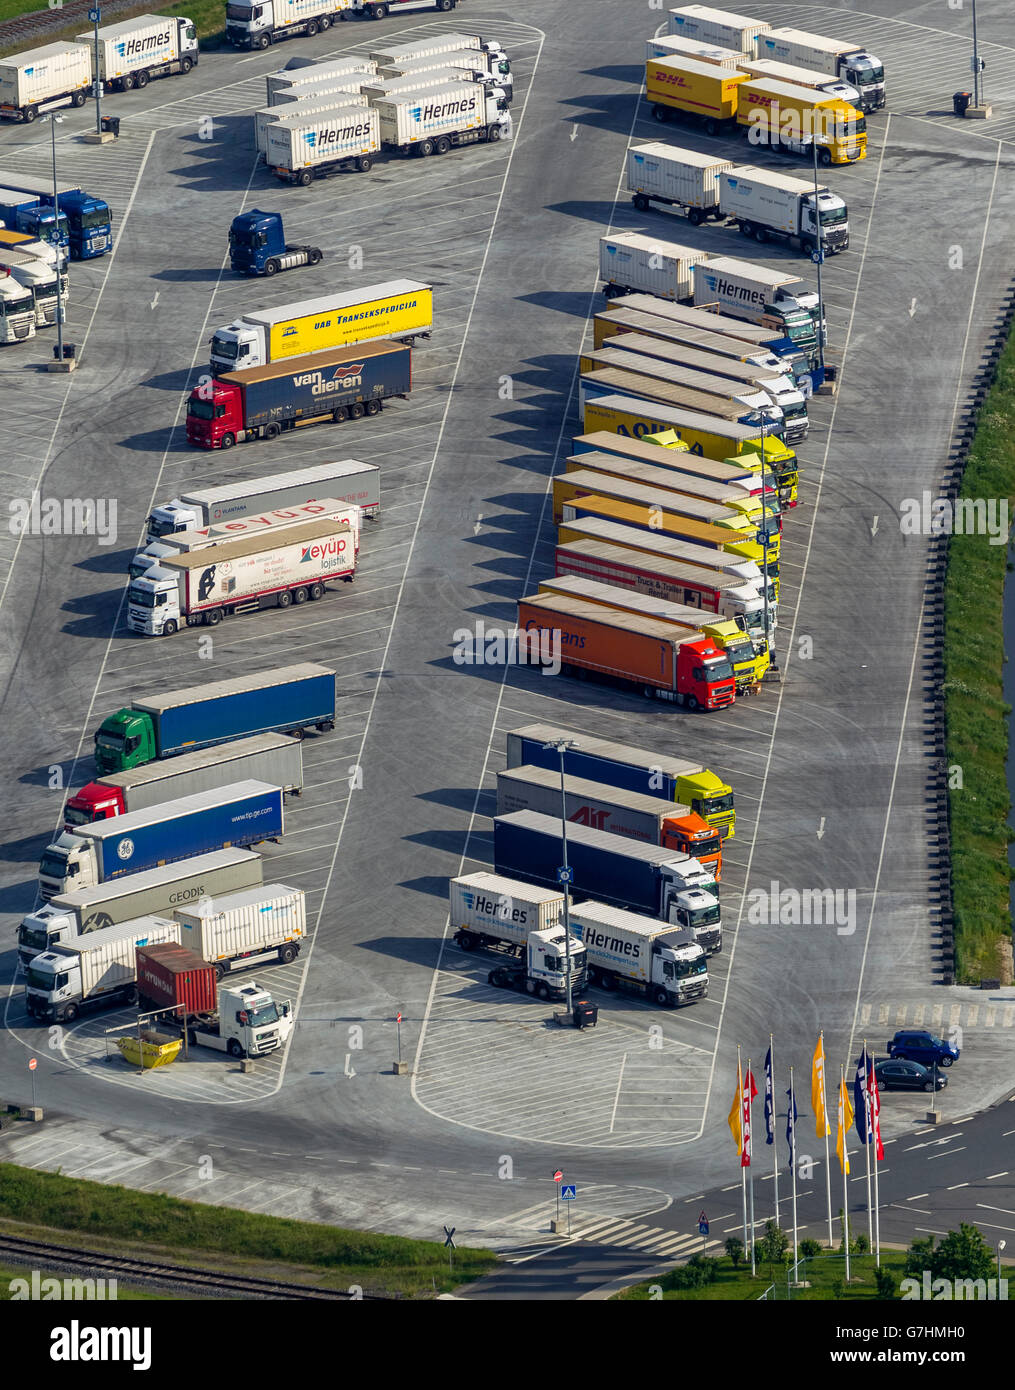 aerial view ikea logistics center with truck parking justintime